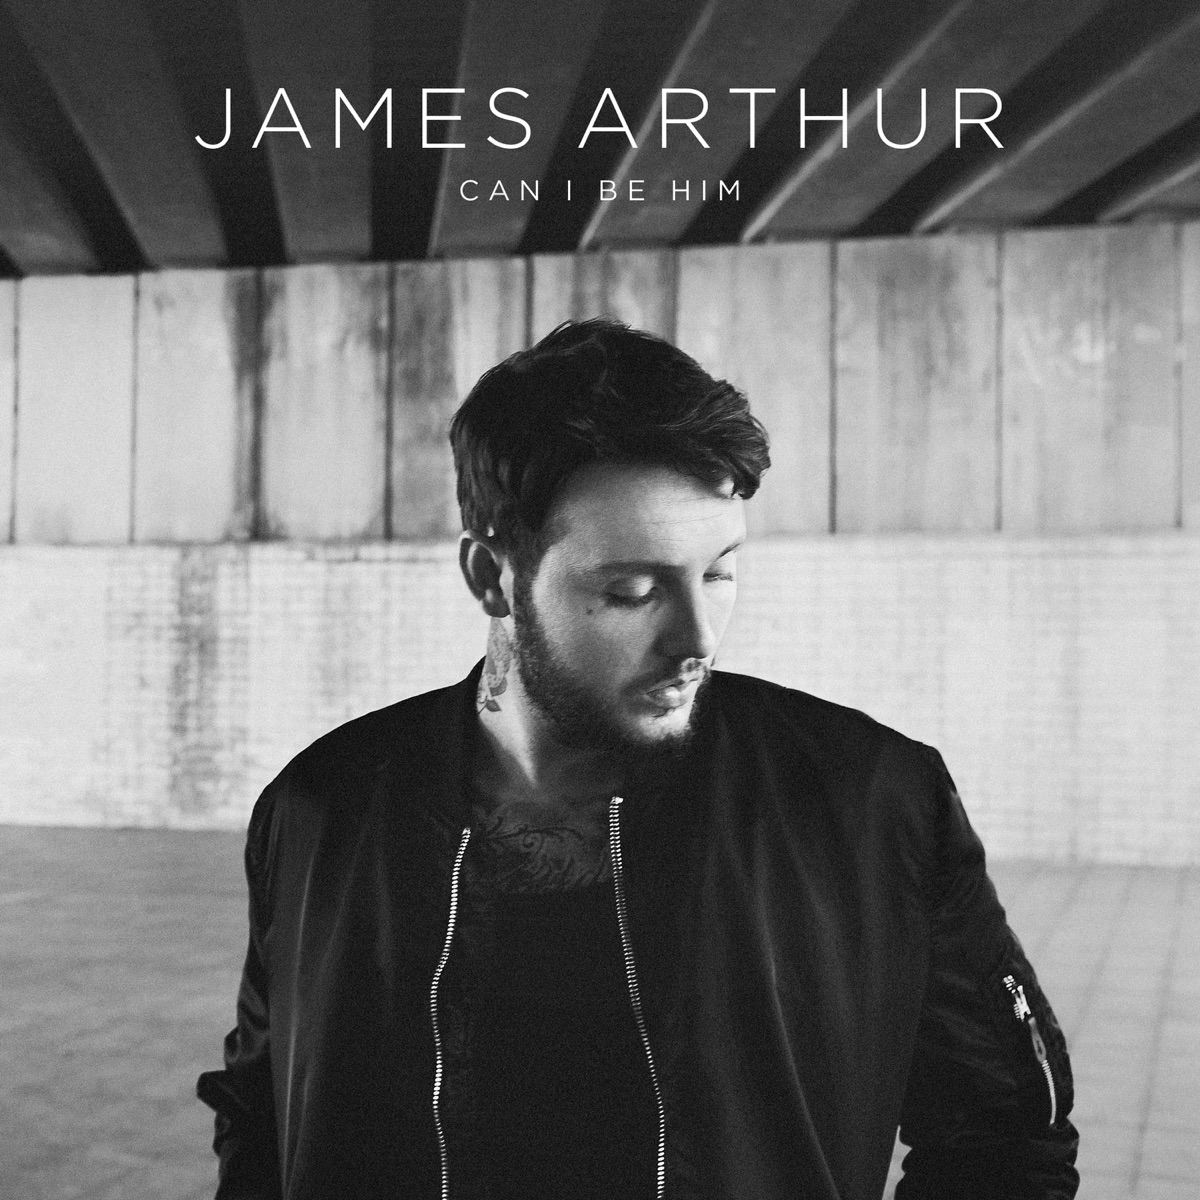 Can I Be Him Album Cover by James Arthur